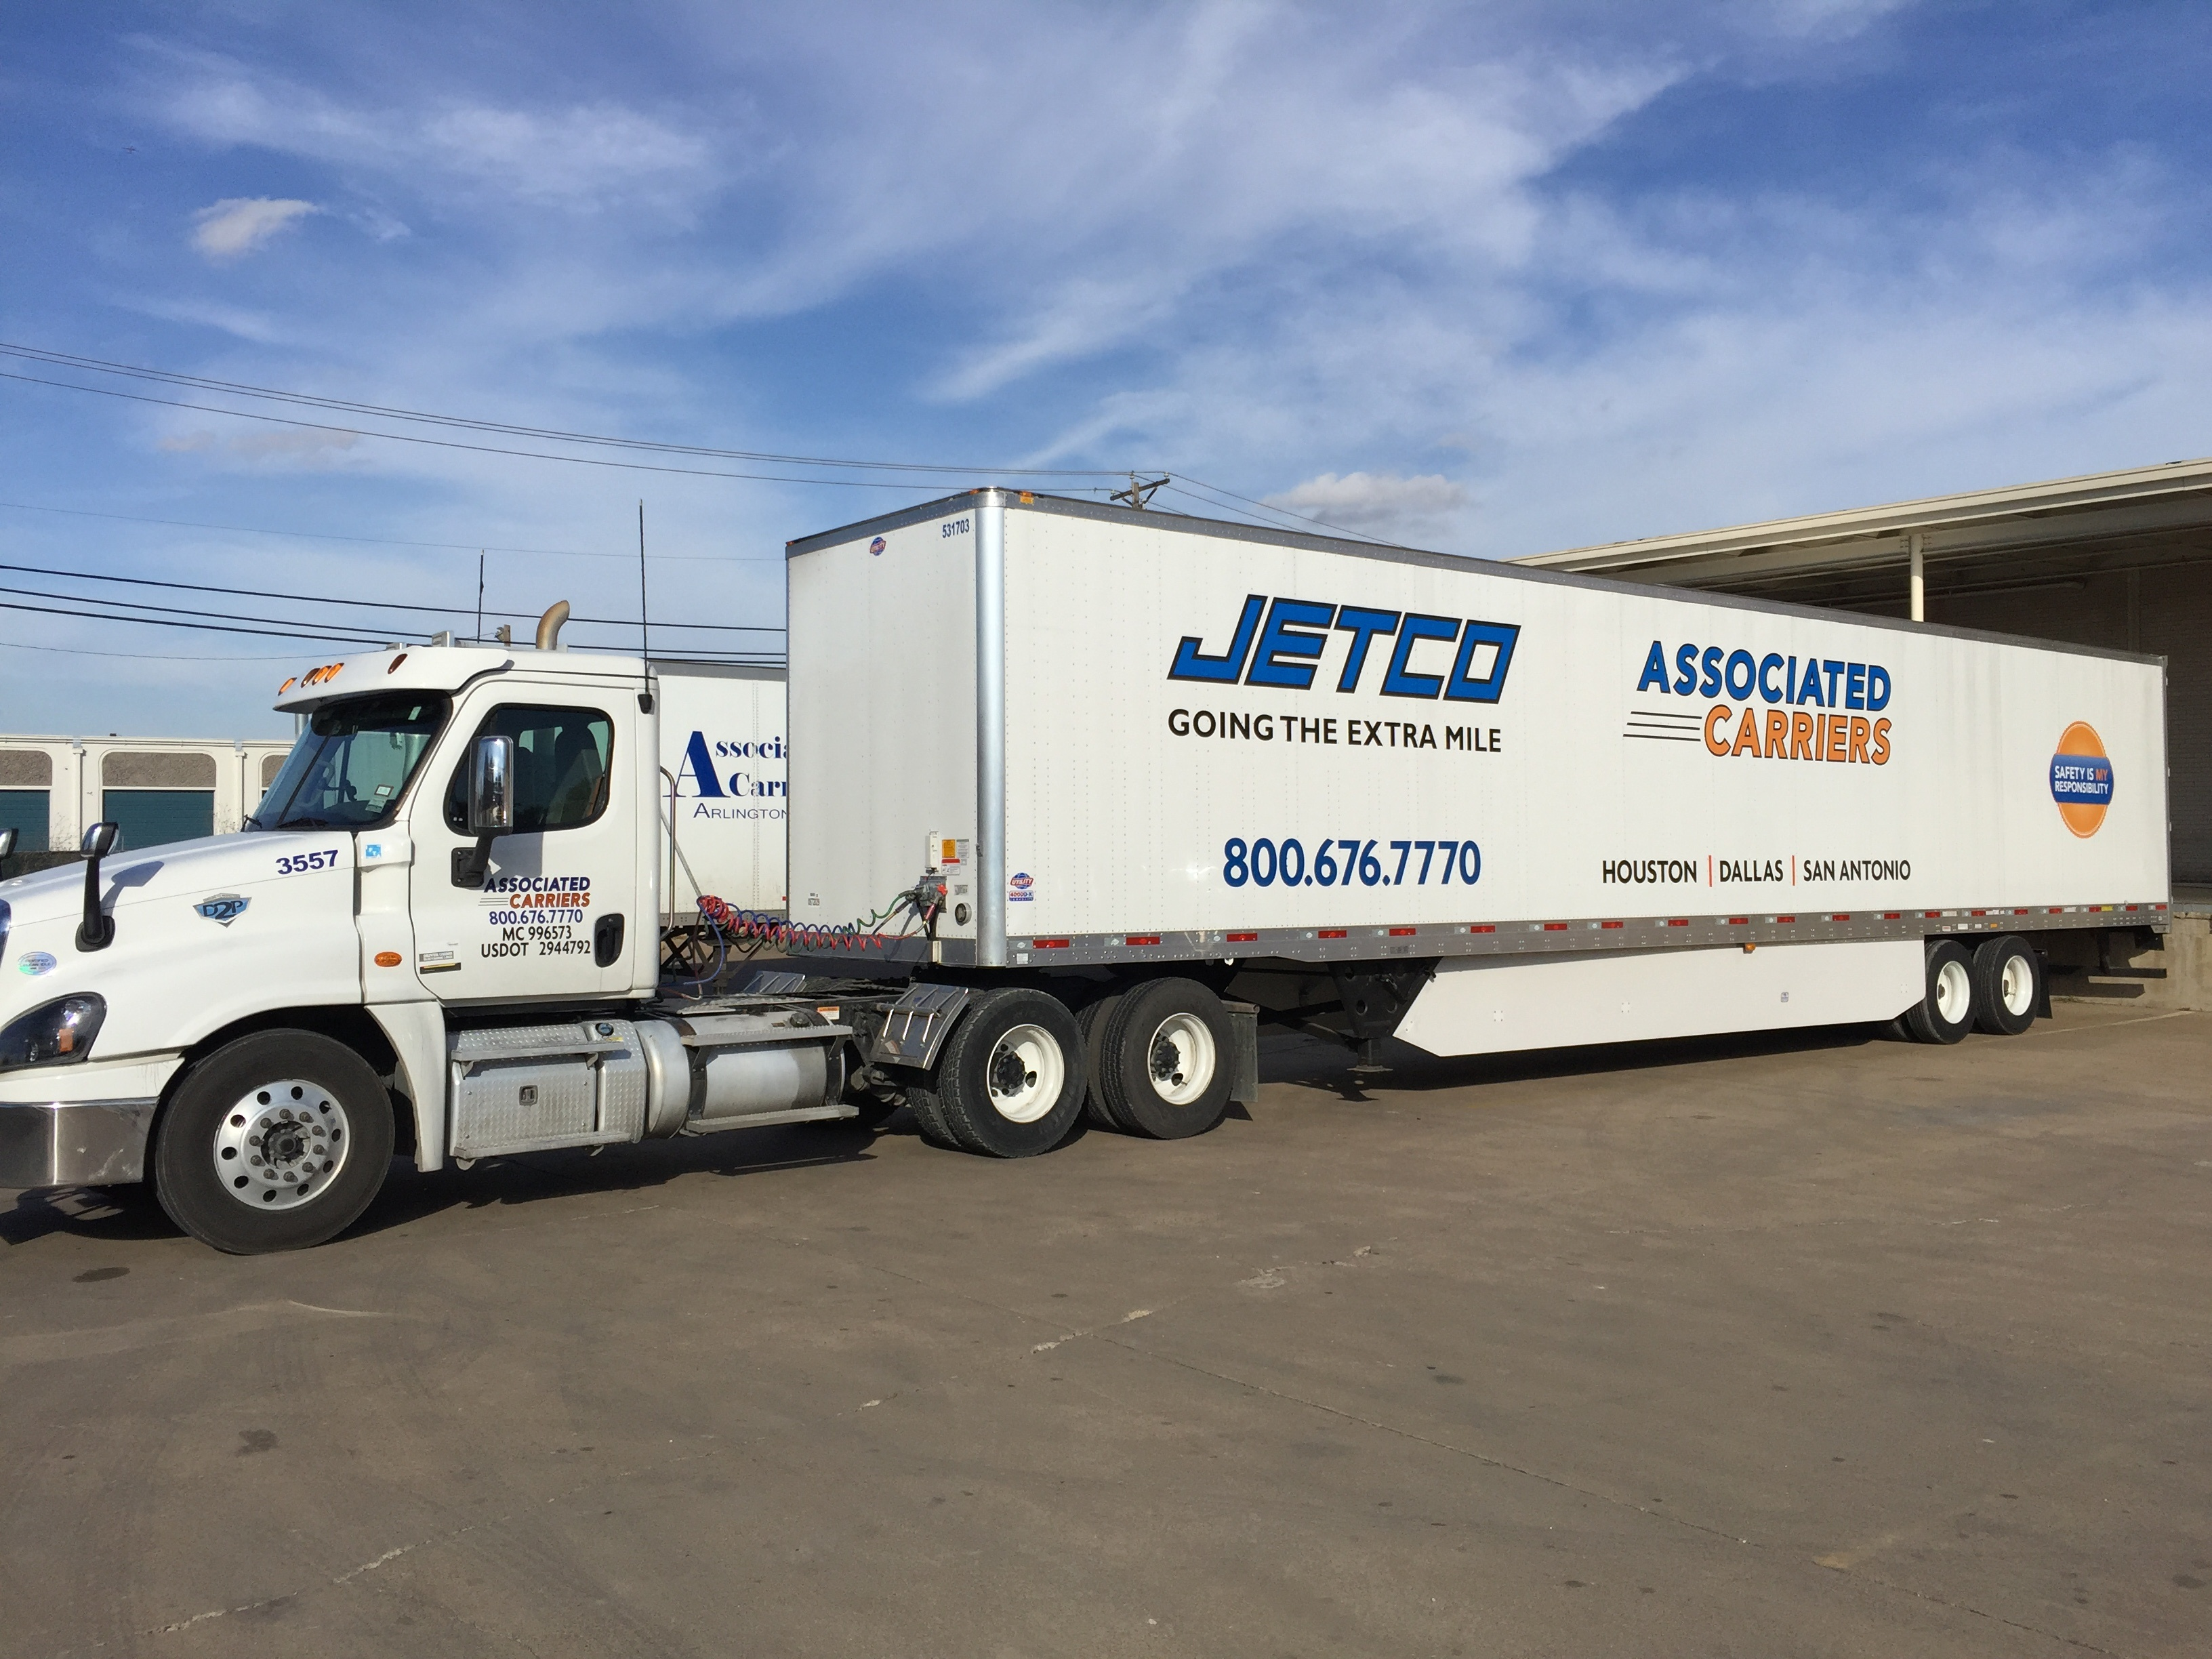 Associated Carriers Joins the Jetco Family